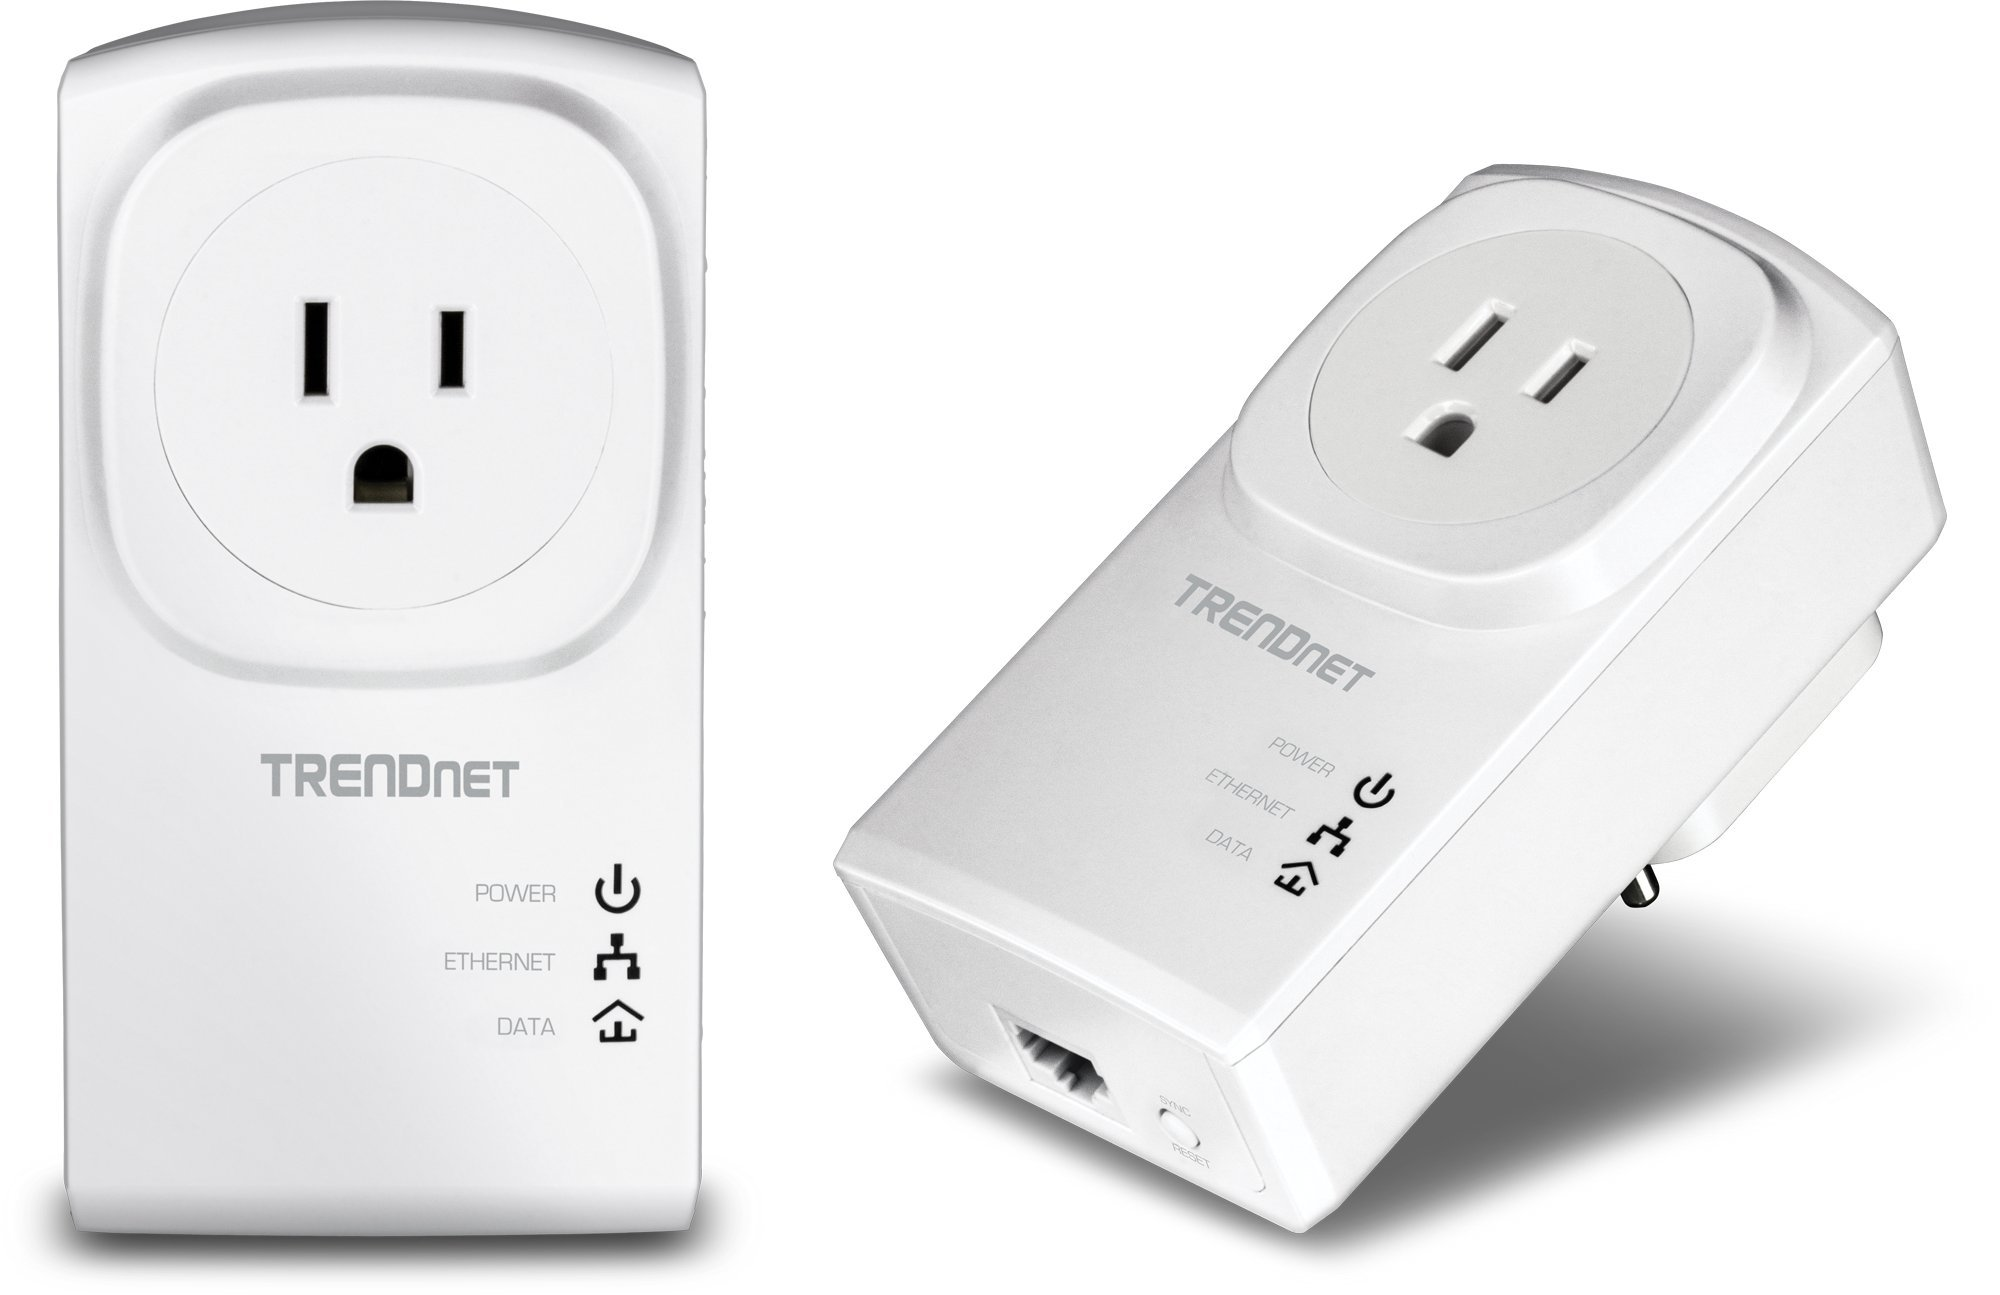 TRENDnet Powerline 500 AV Nano Adapter Kit With Built-In Outlet, Power Outlet Pass-Through, Includes 2 x TPL-407E Adapters, Plug & Play, Ideal For Smart TVs, Gaming, White, TPL-407E2K